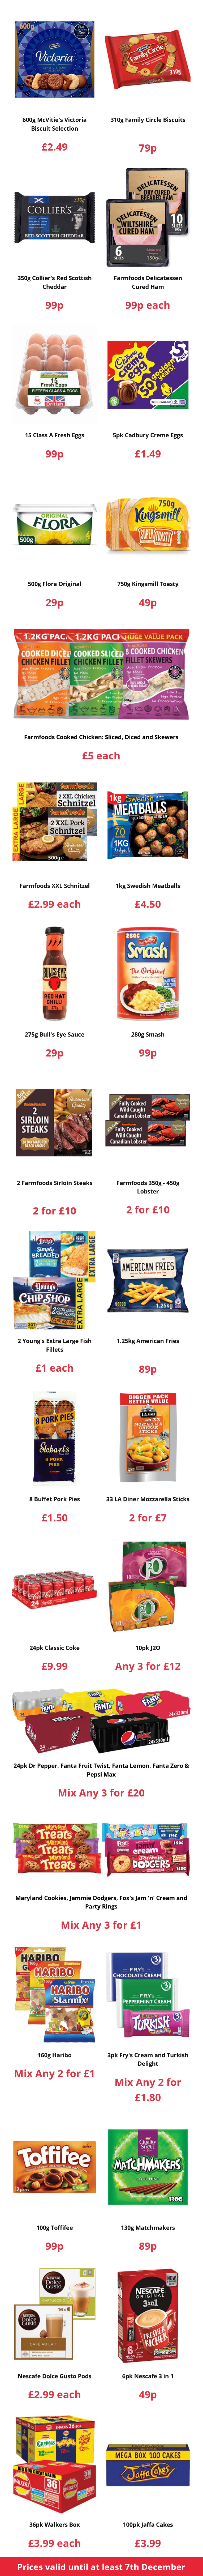 Farmfoods Offers from 25/11/2020 Preview